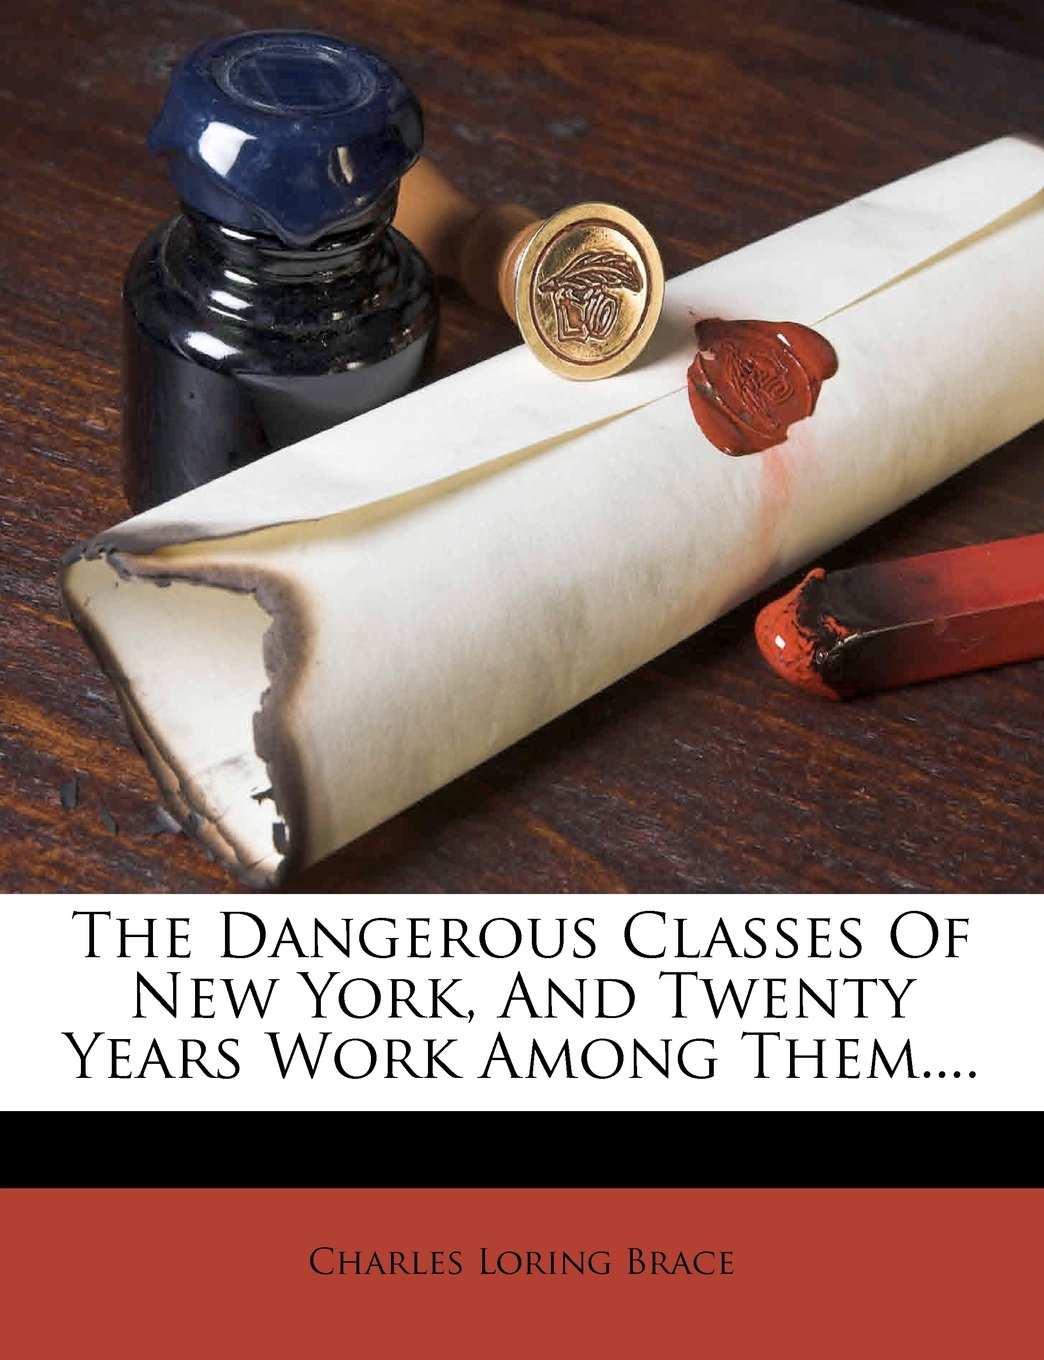 Download The Dangerous Classes Of New York, And Twenty Years Work Among Them.... pdf